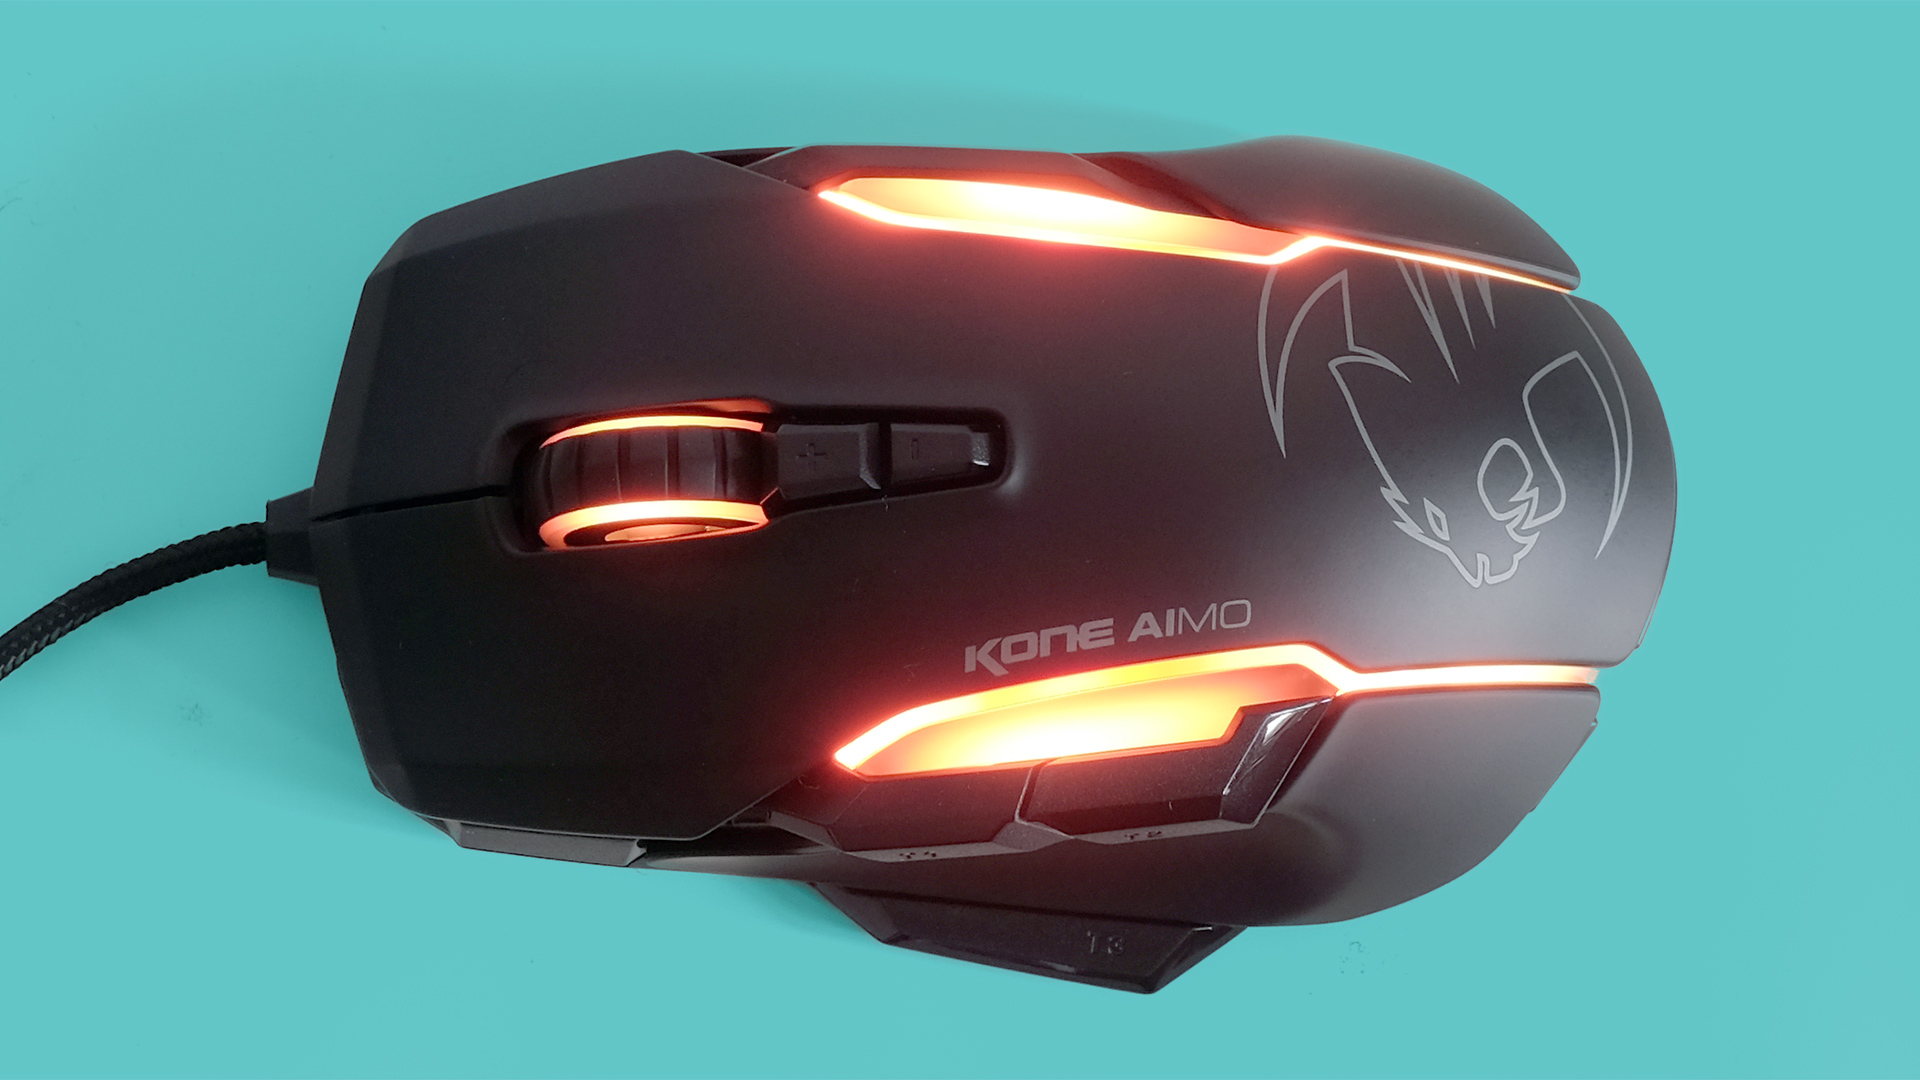 Kone Aimo Software : Roccat Kone Aimo Gaming Mouse With ...